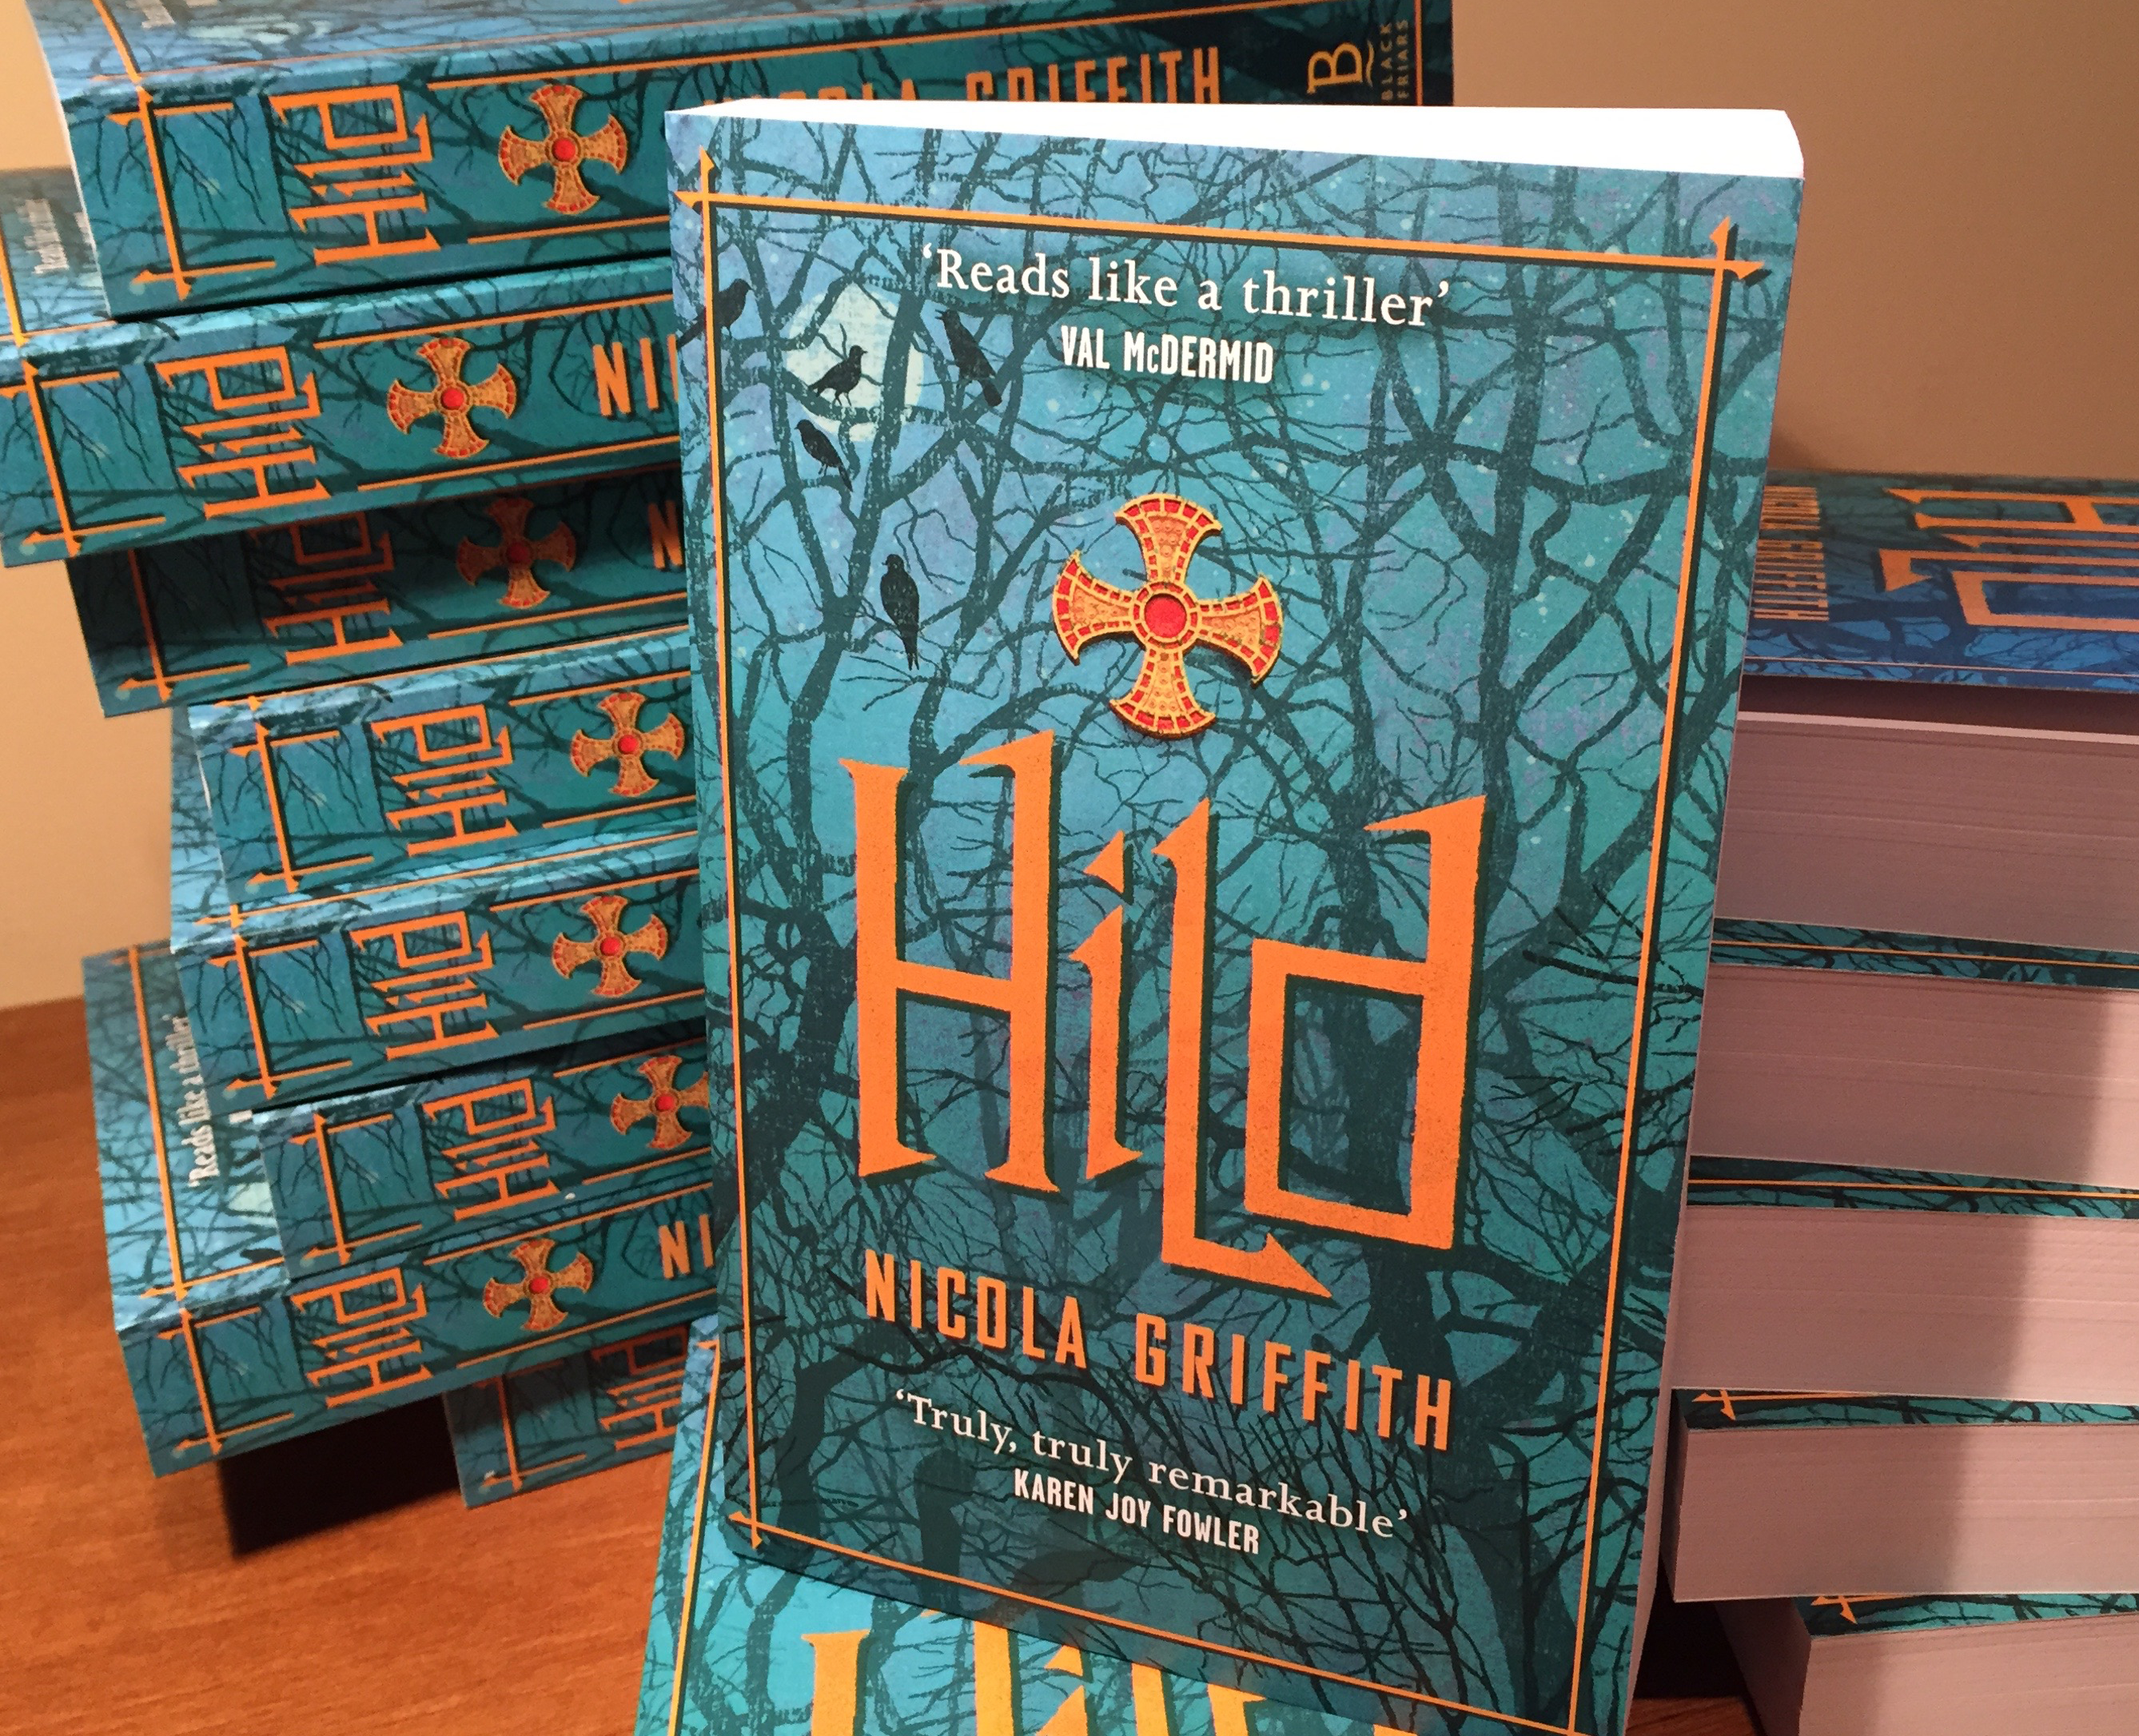 UK edition of the novel Hild, by Nicola Griffith